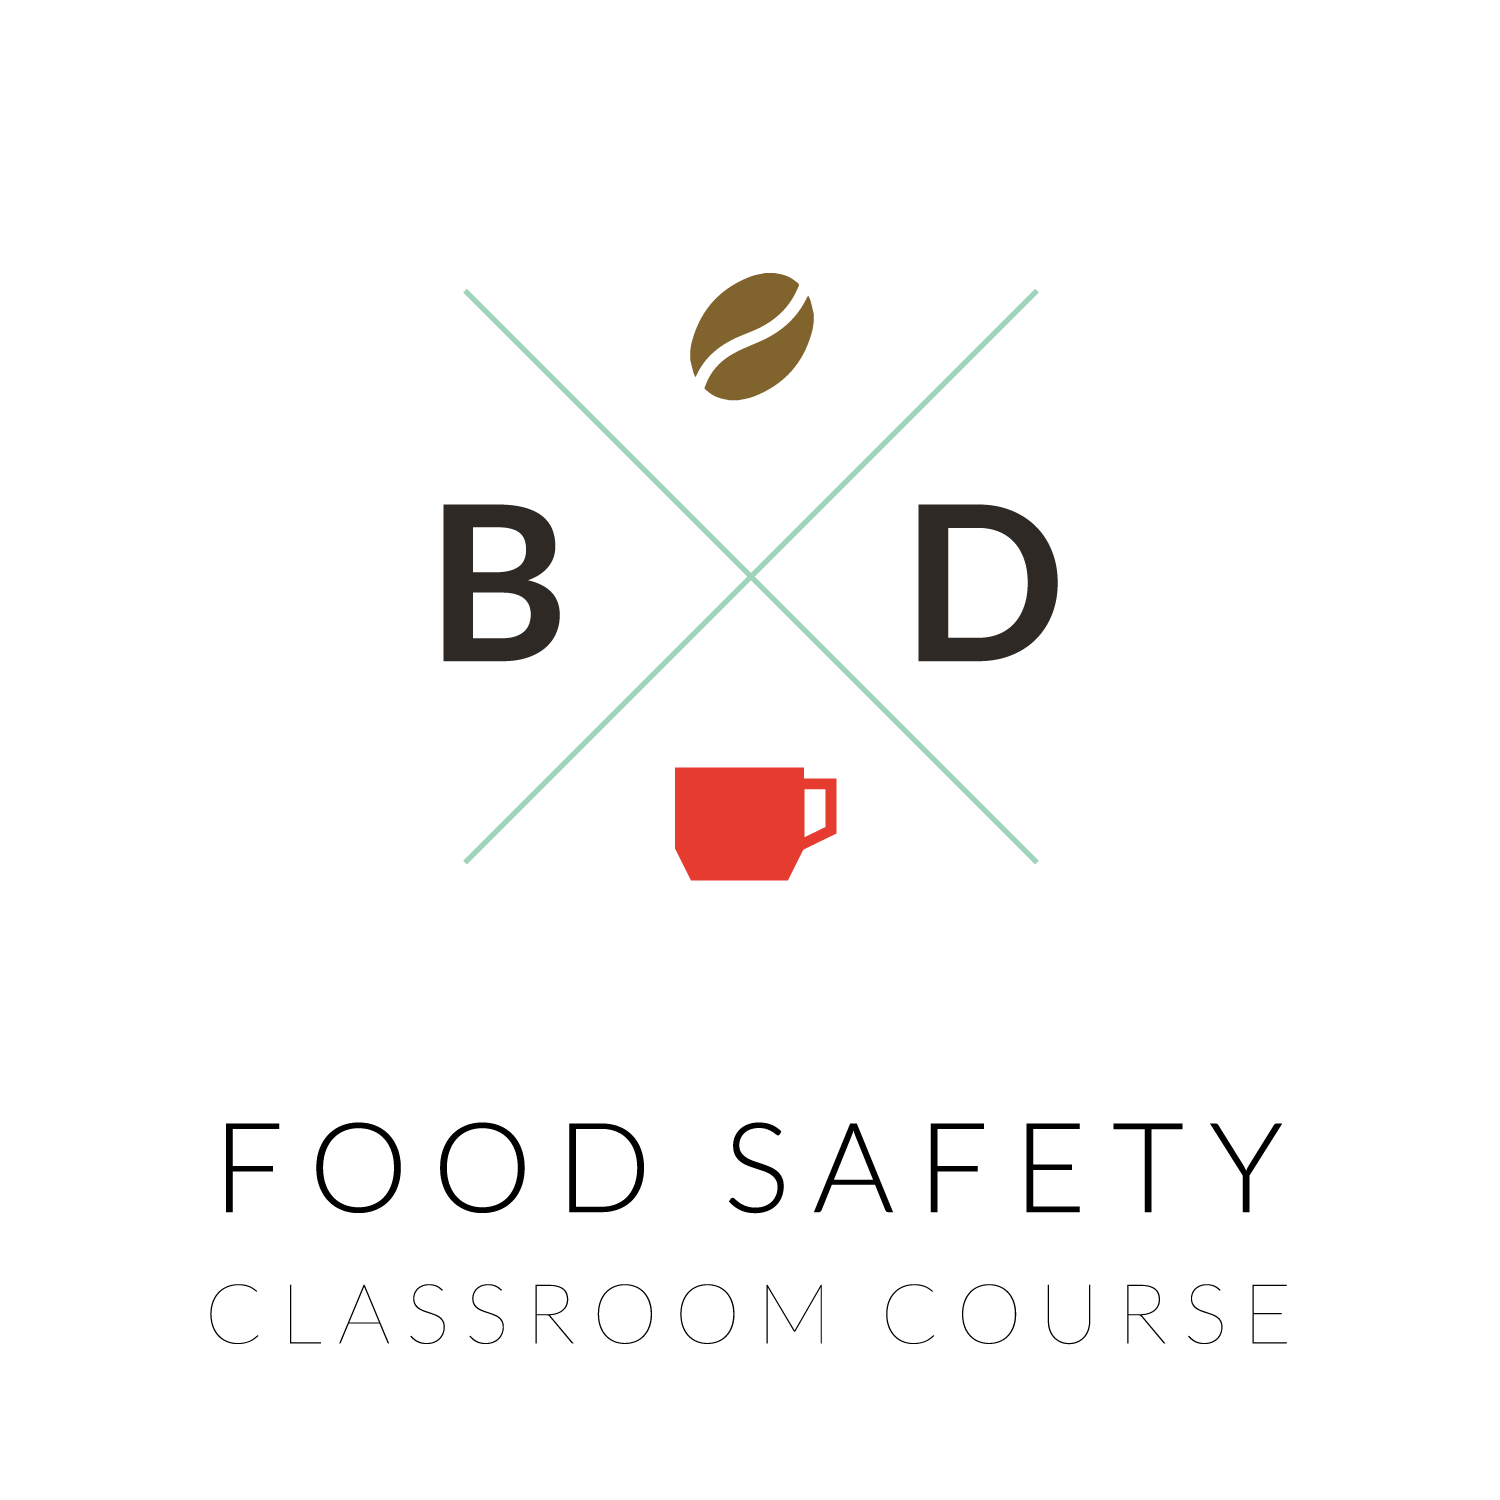 FOODSAFETY-01.png